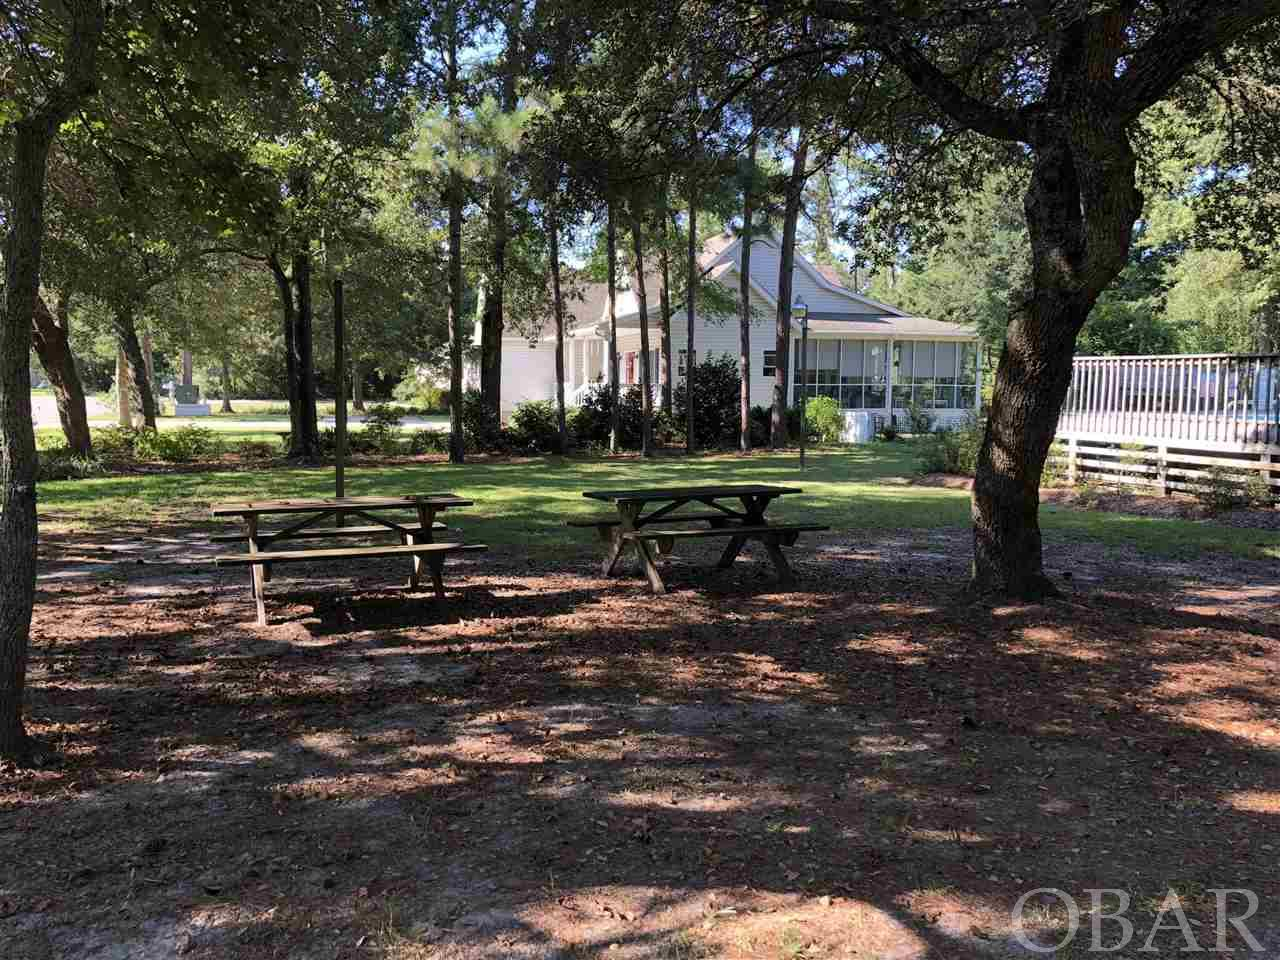 126 Raleigh Wood Drive, Manteo, NC 27954, ,Lots/land,For sale,Raleigh Wood Drive,101932